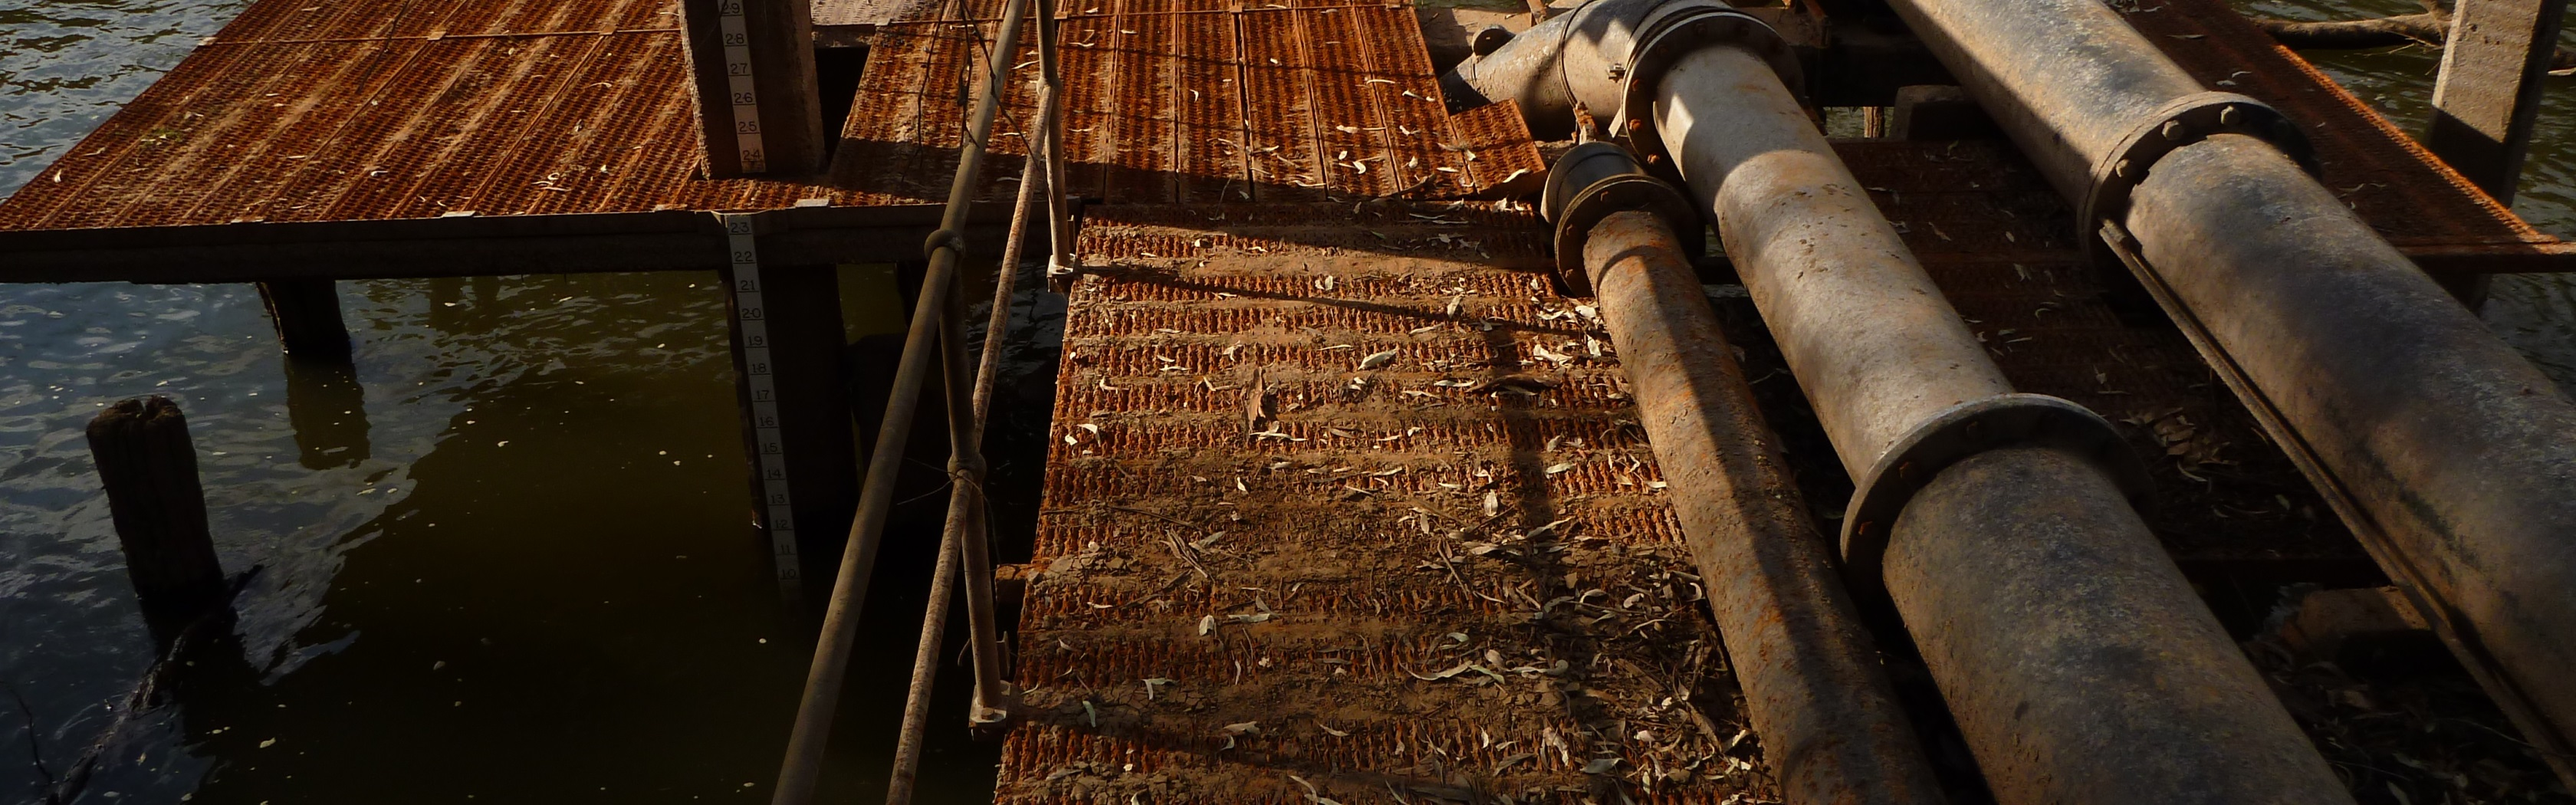 Dual screen Linux wallpaper. Rusty platform and water pipes.